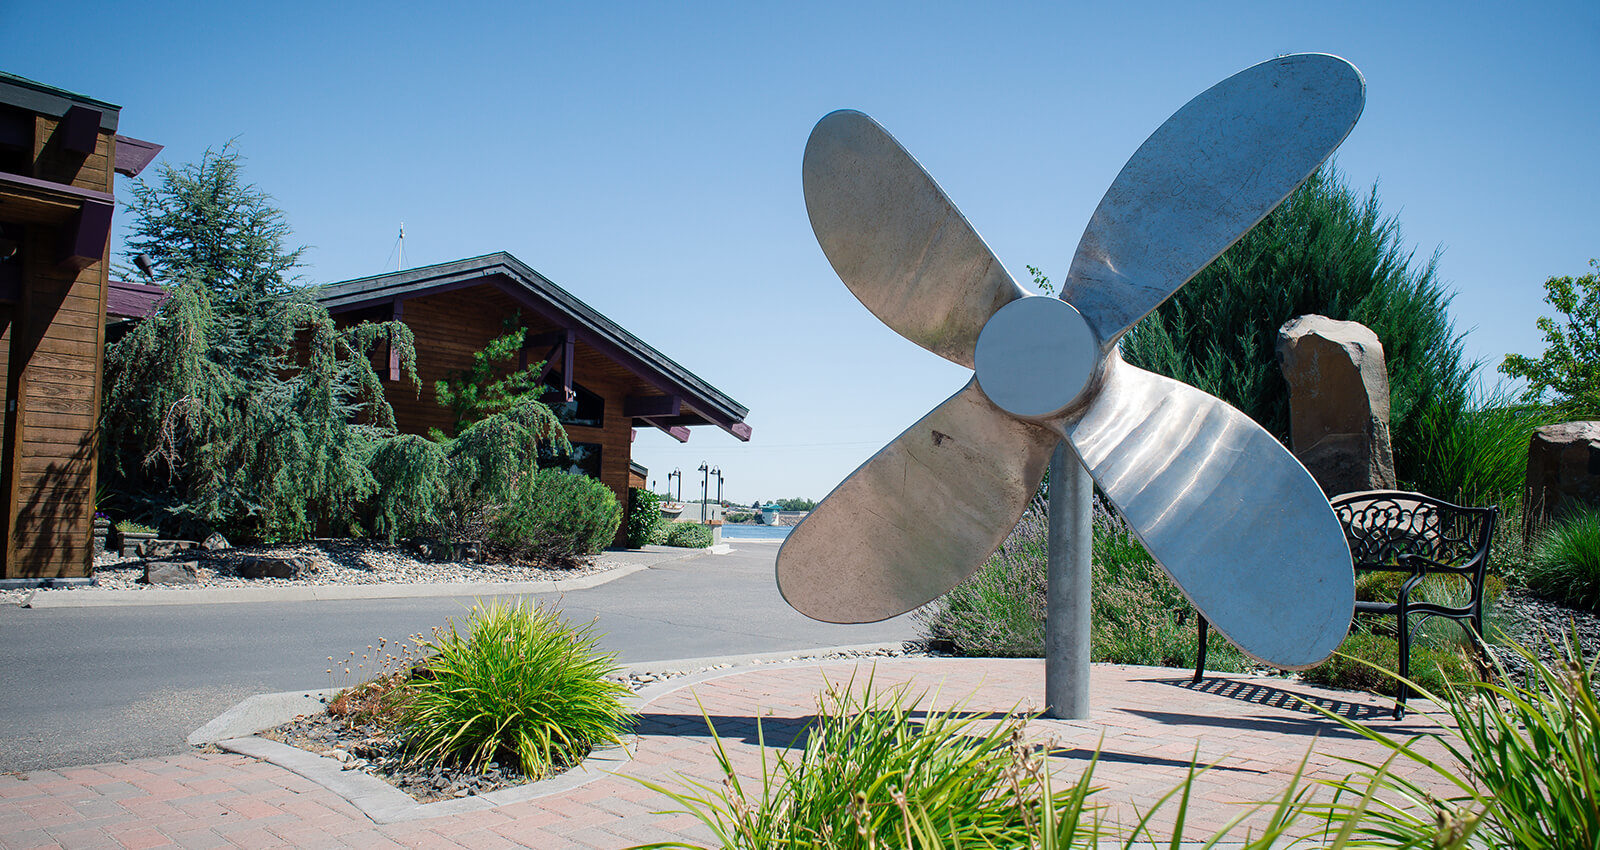 Sun relecting off of the Propeller art installation.